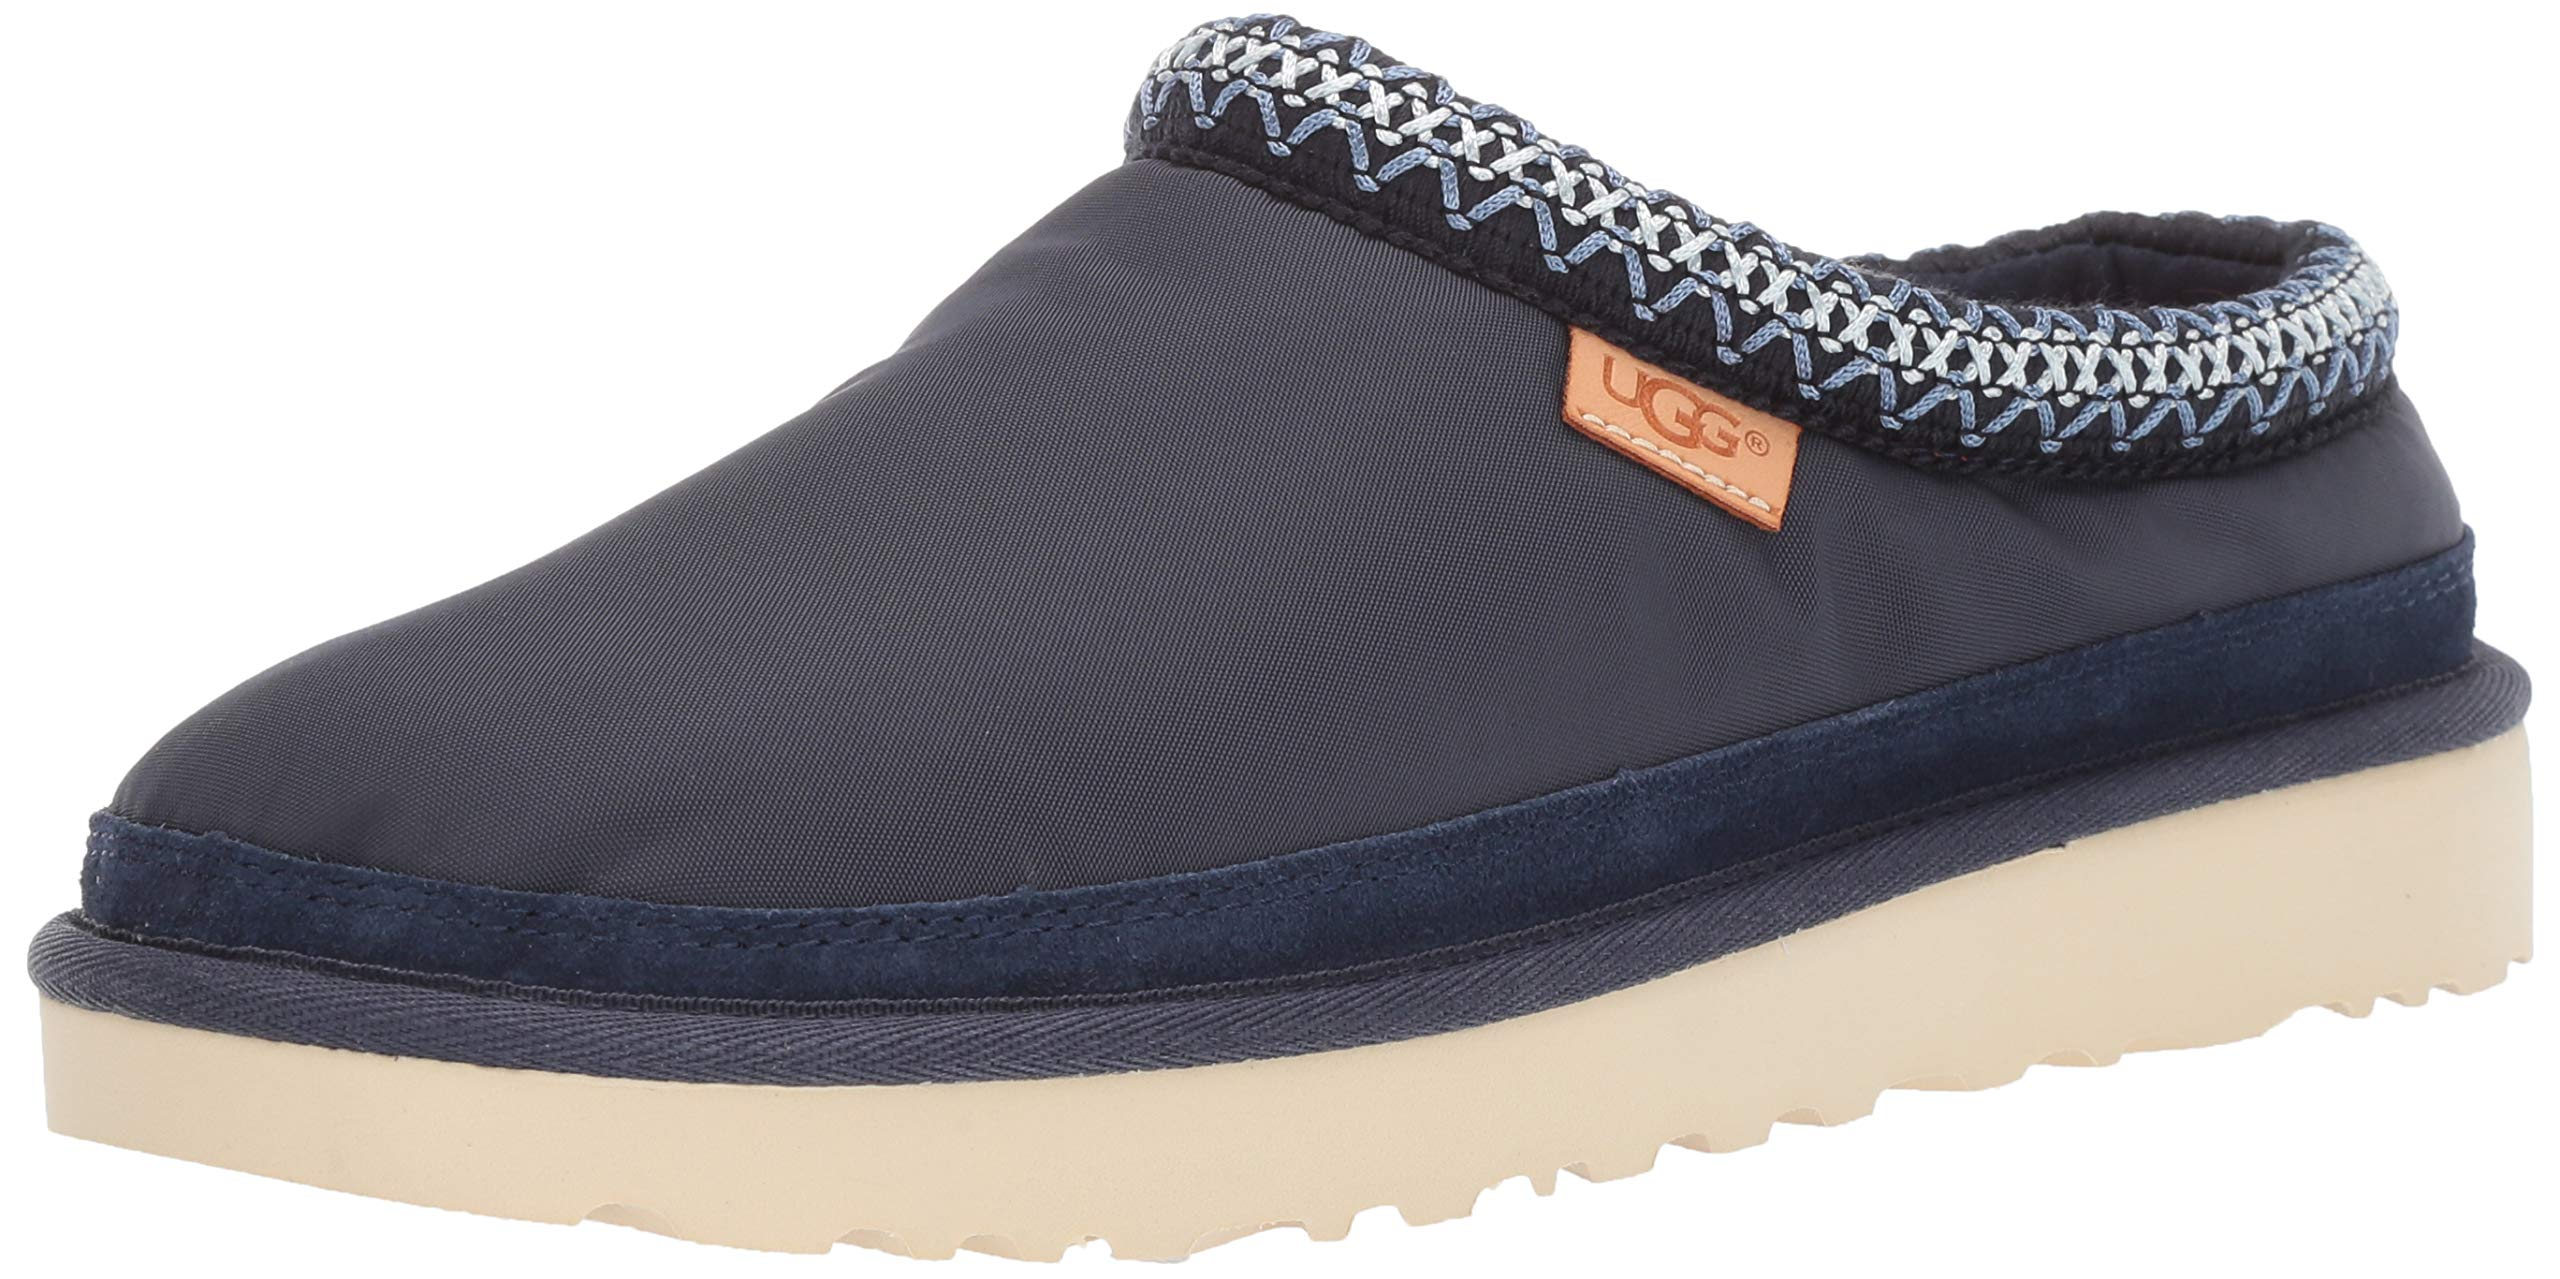 UGG Men's Tasman MLT Slipper, Navy, 10 Medium US